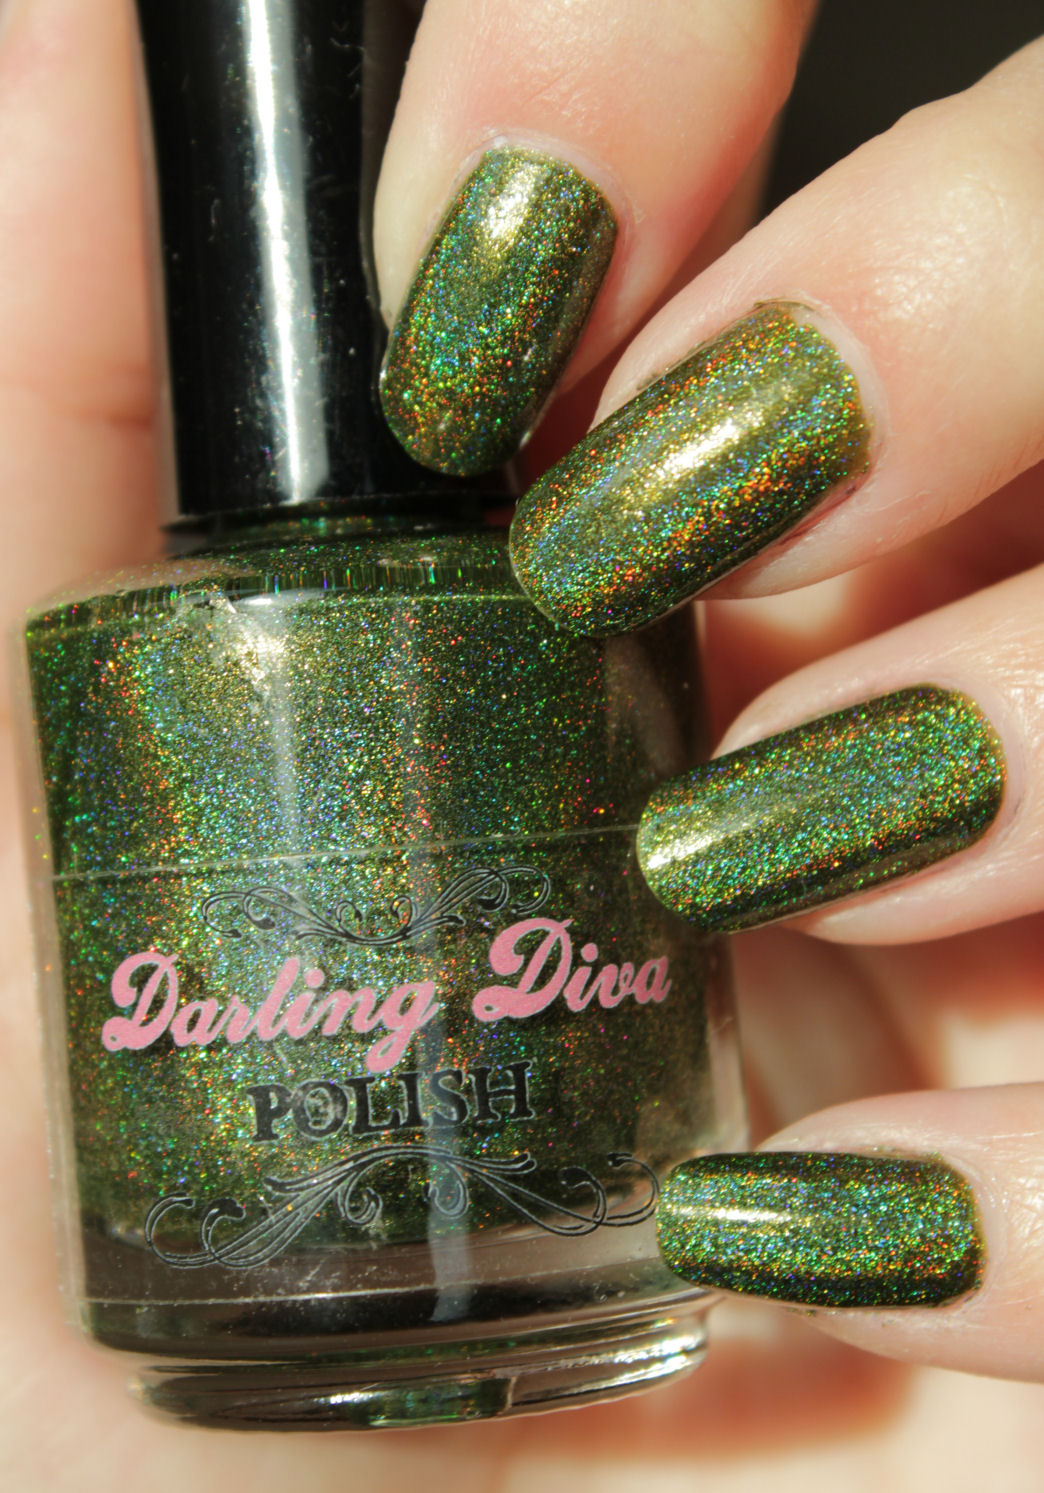 http://lacquediction.blogspot.de/2015/02/darling-diva-shapeshifter.html